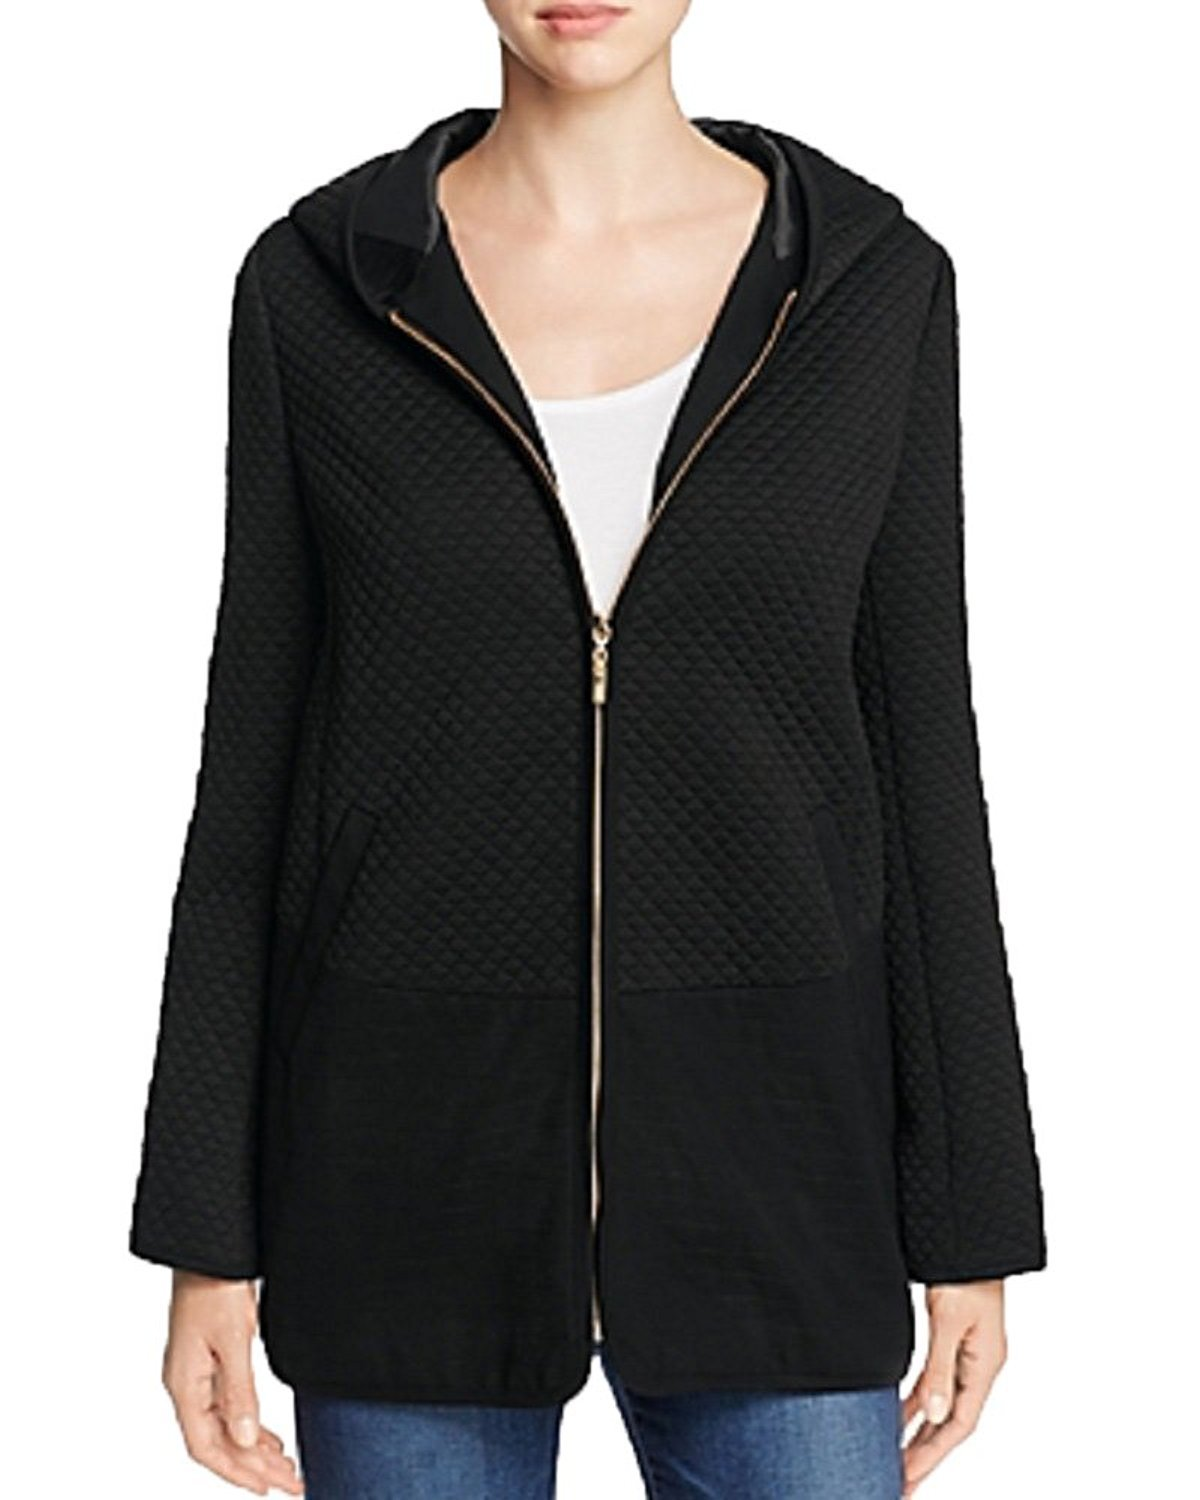 FINITY Quilted Hooded Jacket (Black, 6)